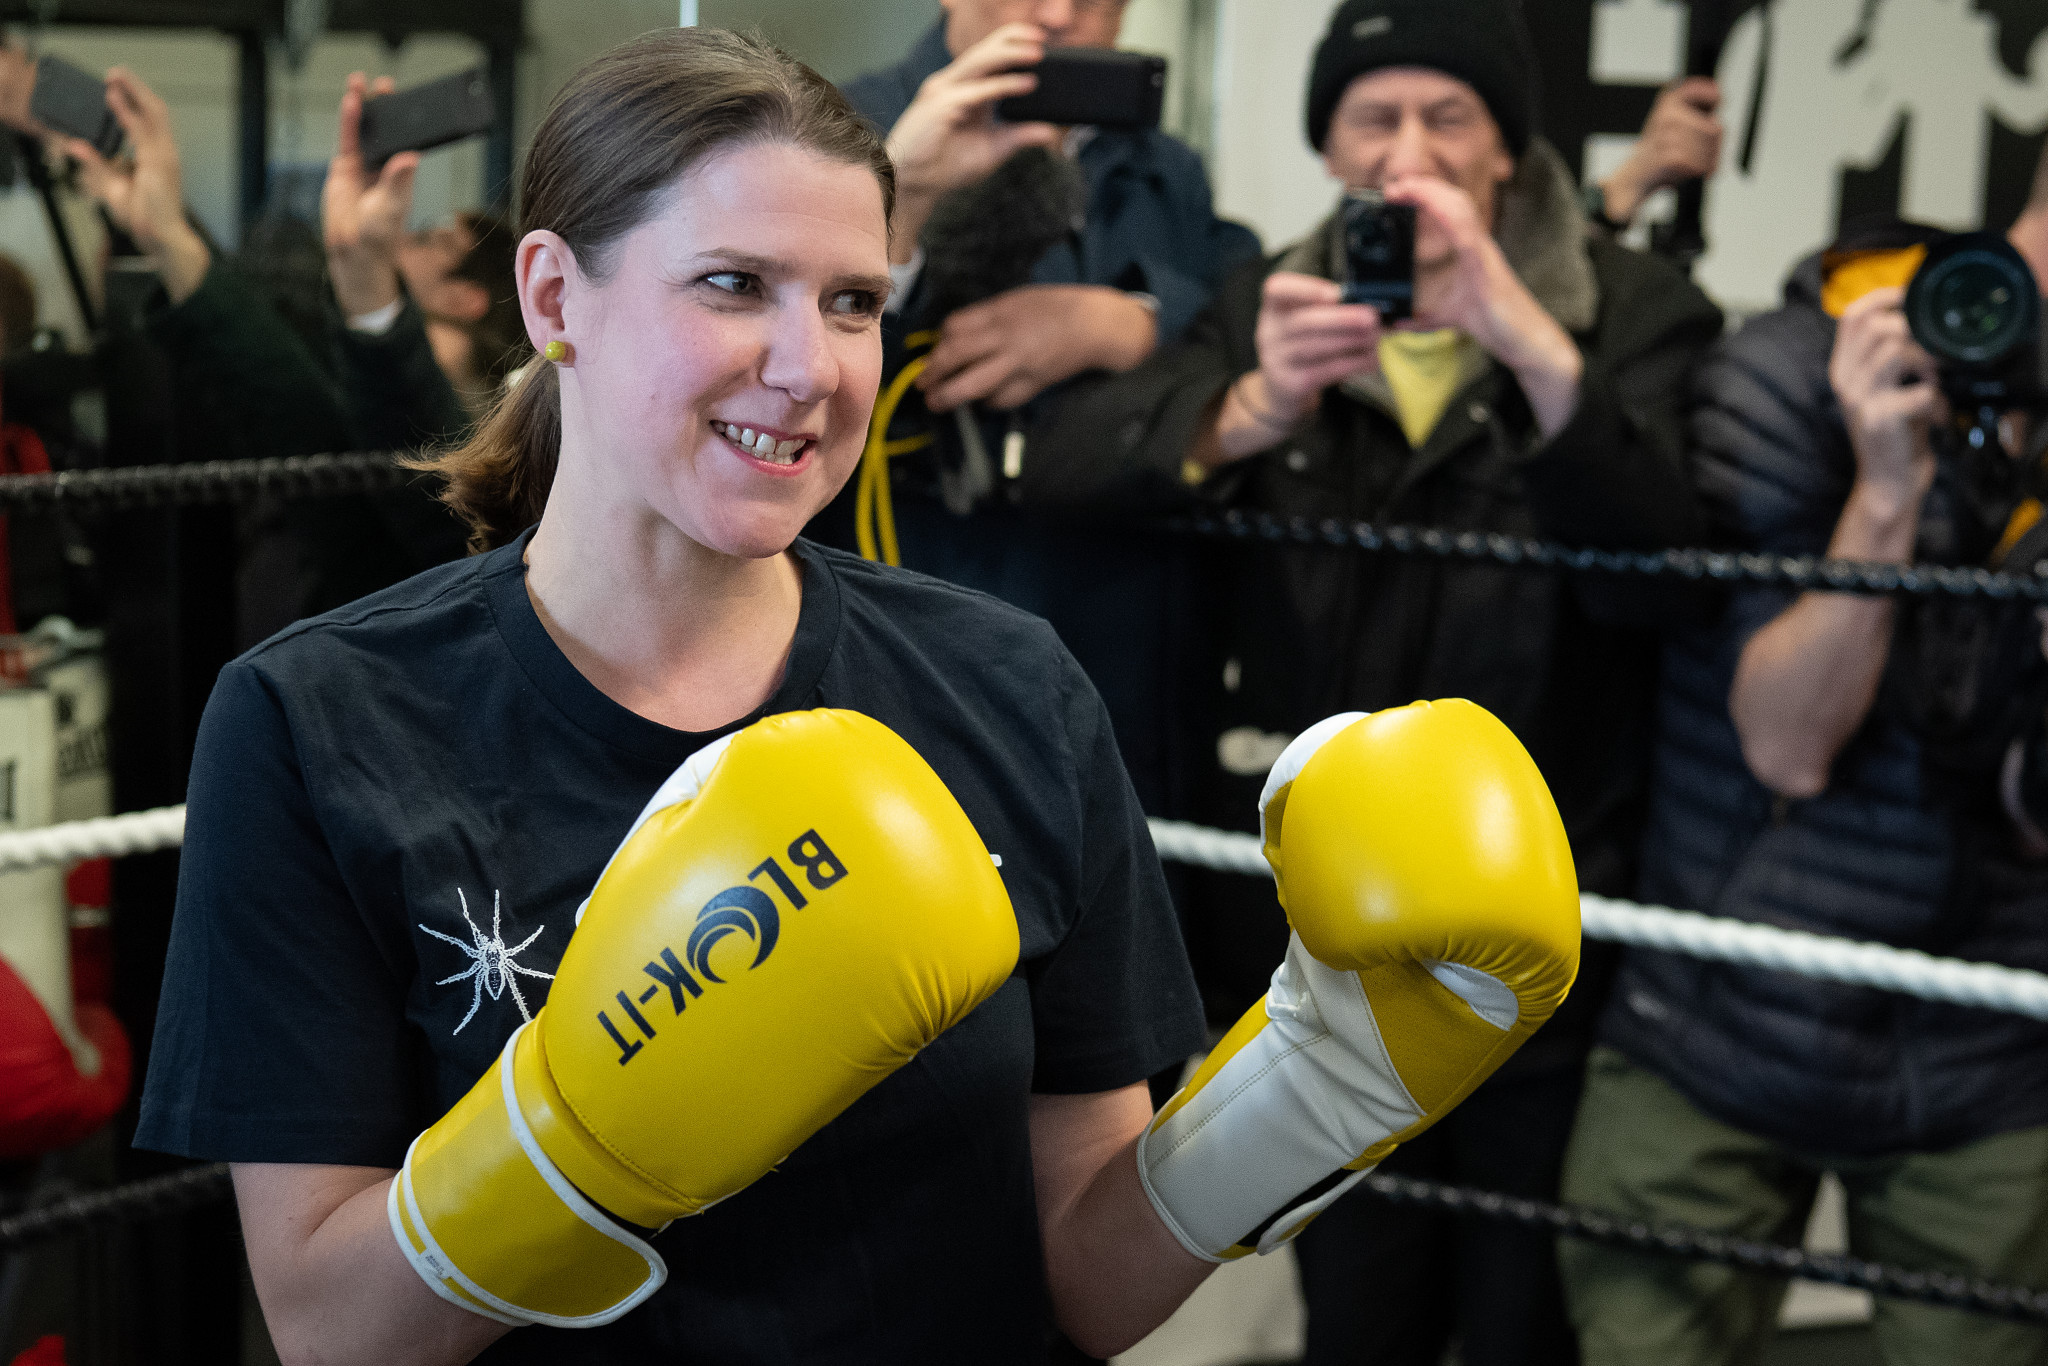 Even Liberal Democrat leader Jo Swinson entered the ring last month, showing how mainstream boxing has become ©Getty Images